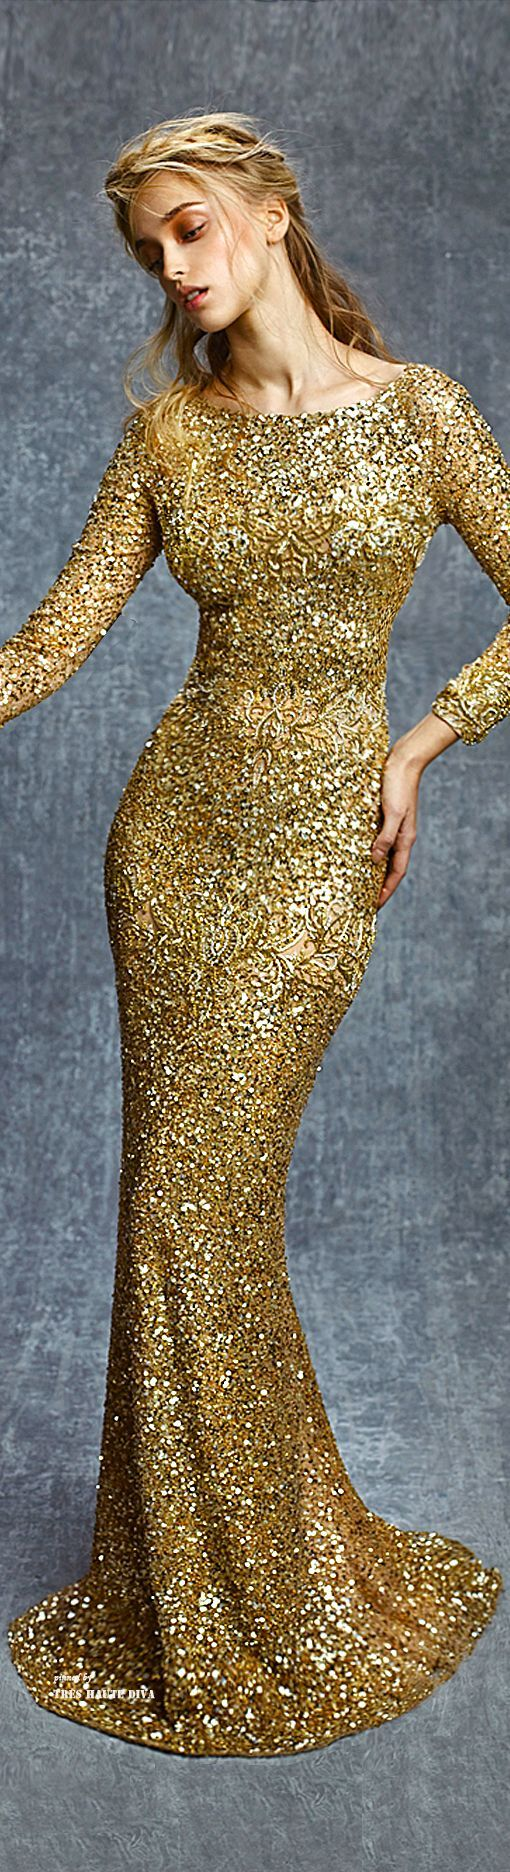 Pin by conchi marín on dorado y oro pinterest gold gowns and prom